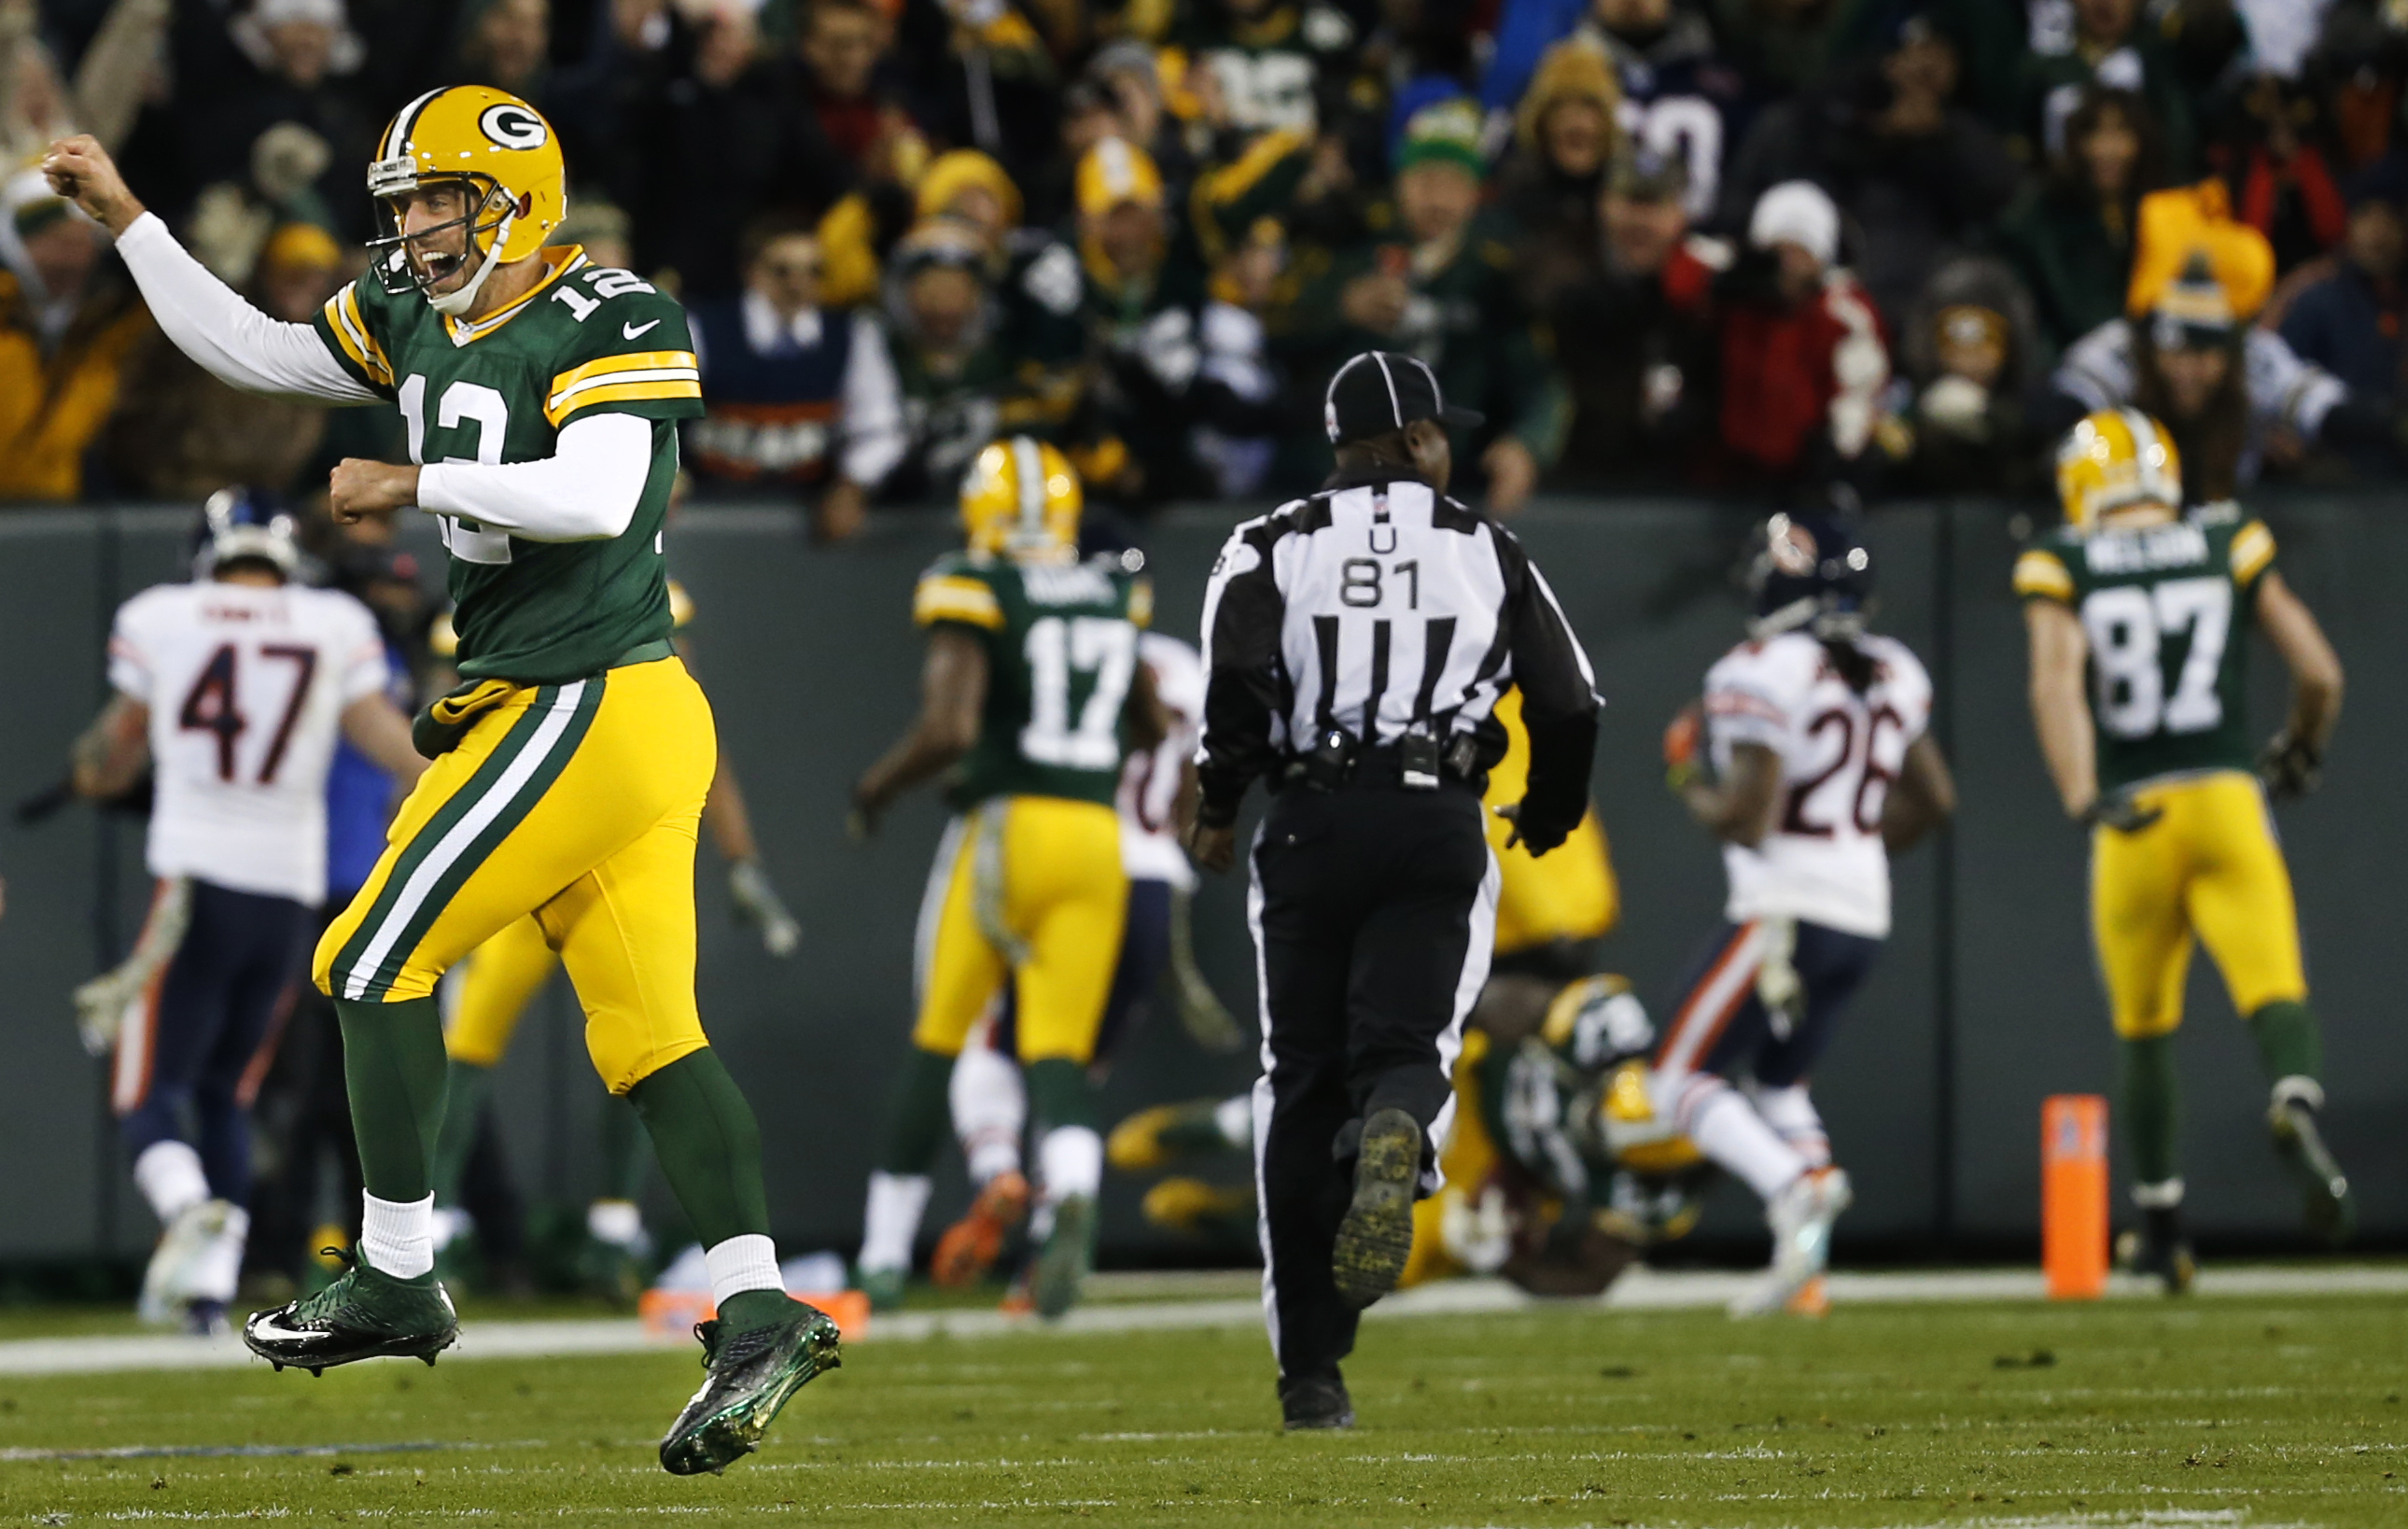 Green Bay Packers quarterback Aaron Rodgers celebrates a touchdown pass to wide receiver Randall Cobb.